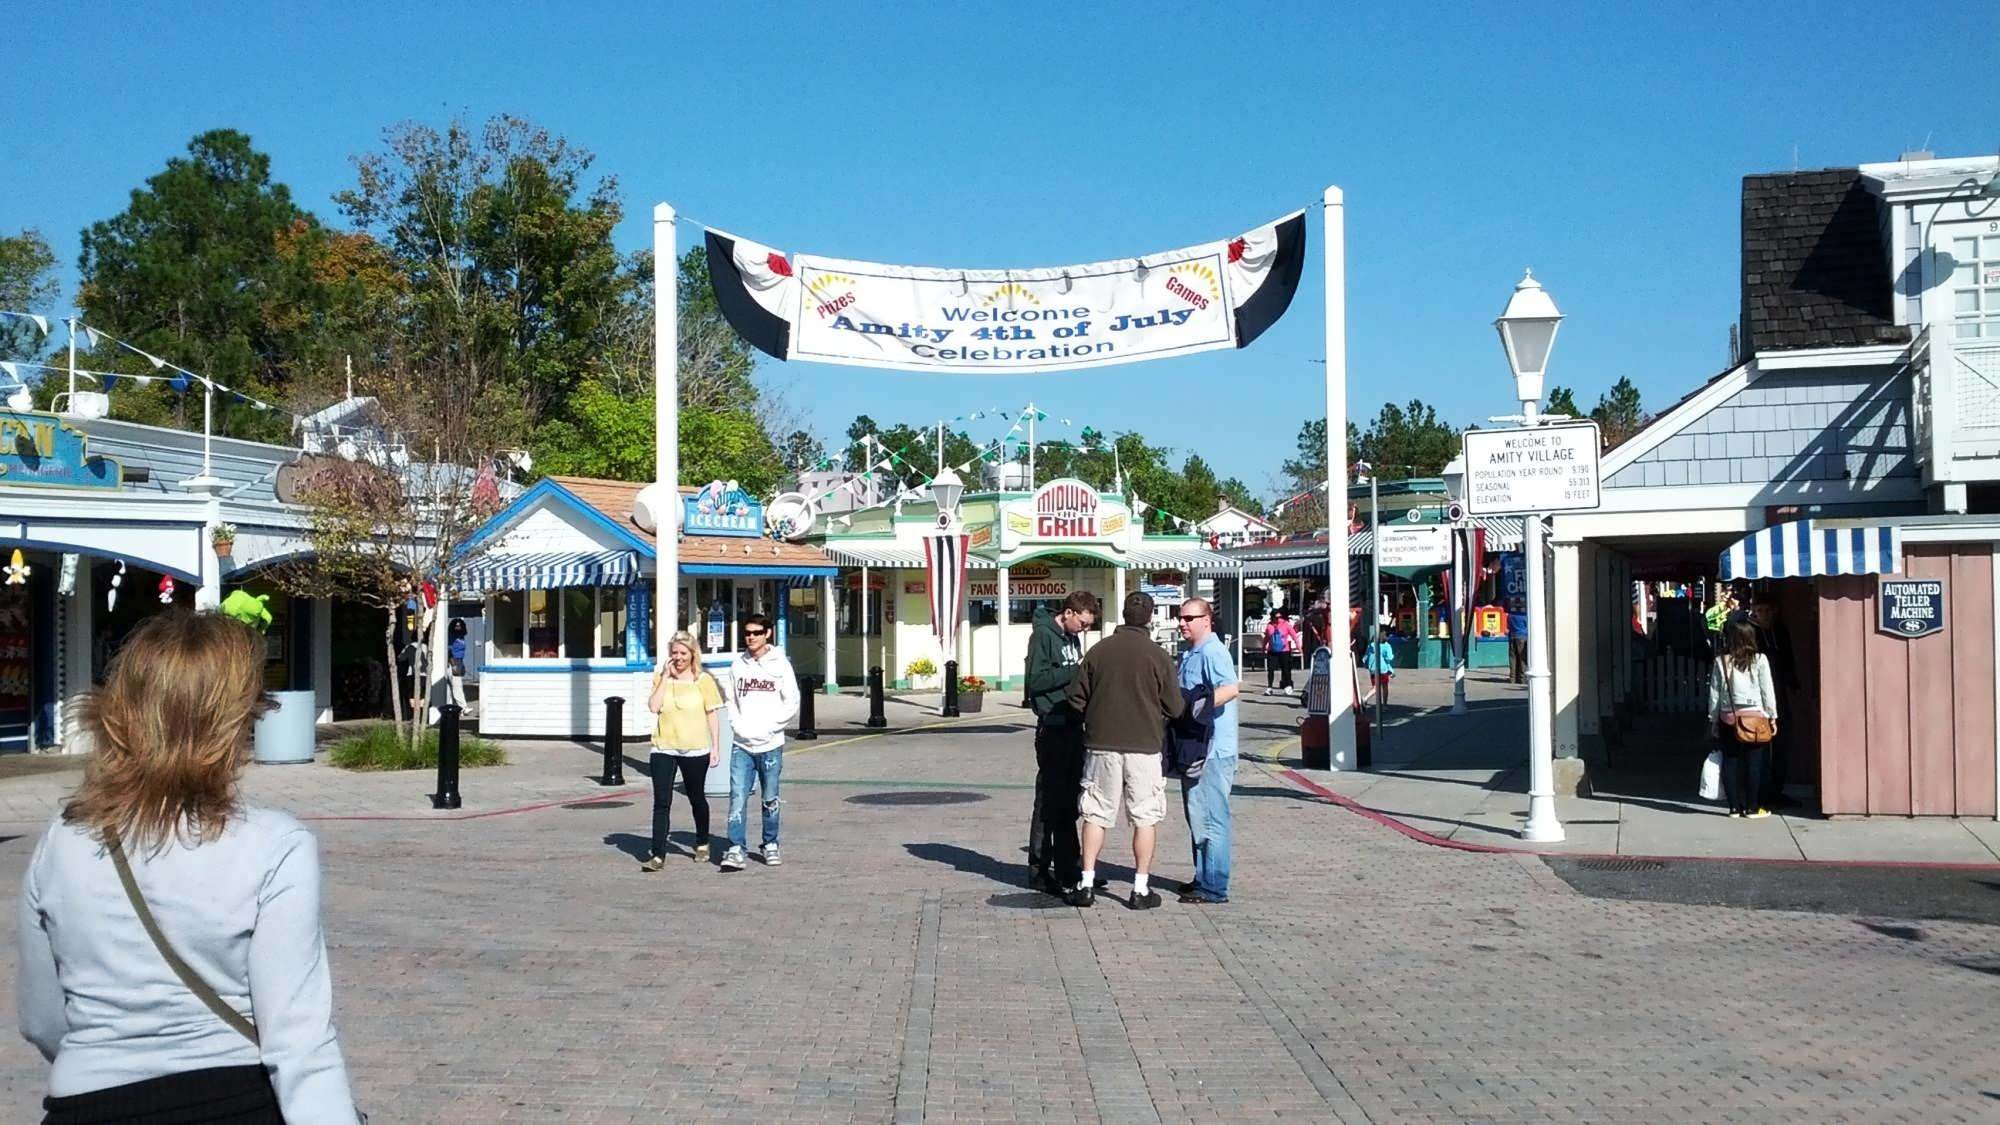 Steven Spielberg's new theme park rides – including Jaws and Back to the Future?